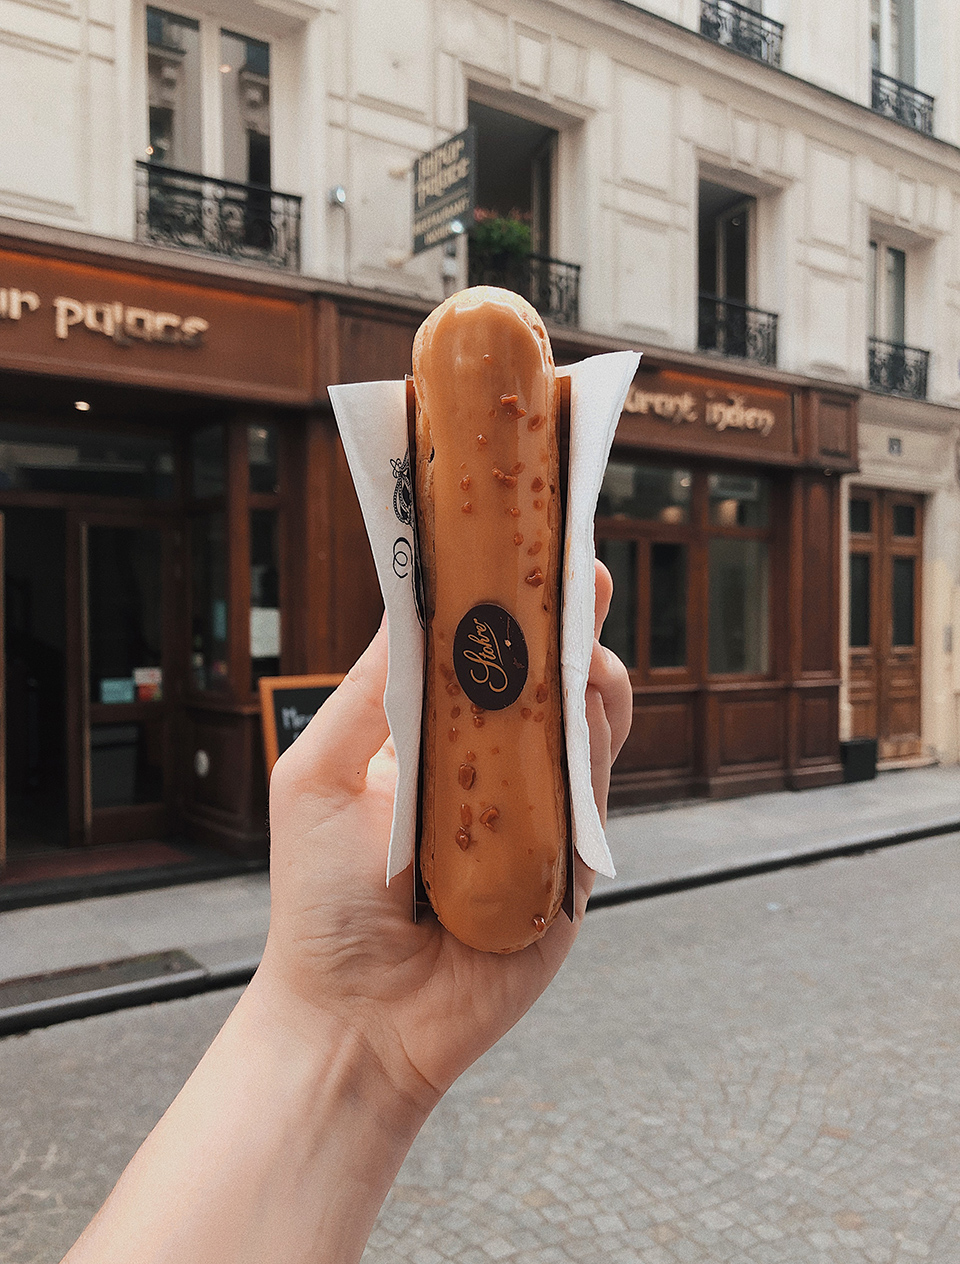 An salted caramel eclair bought at Stohrer in Paris